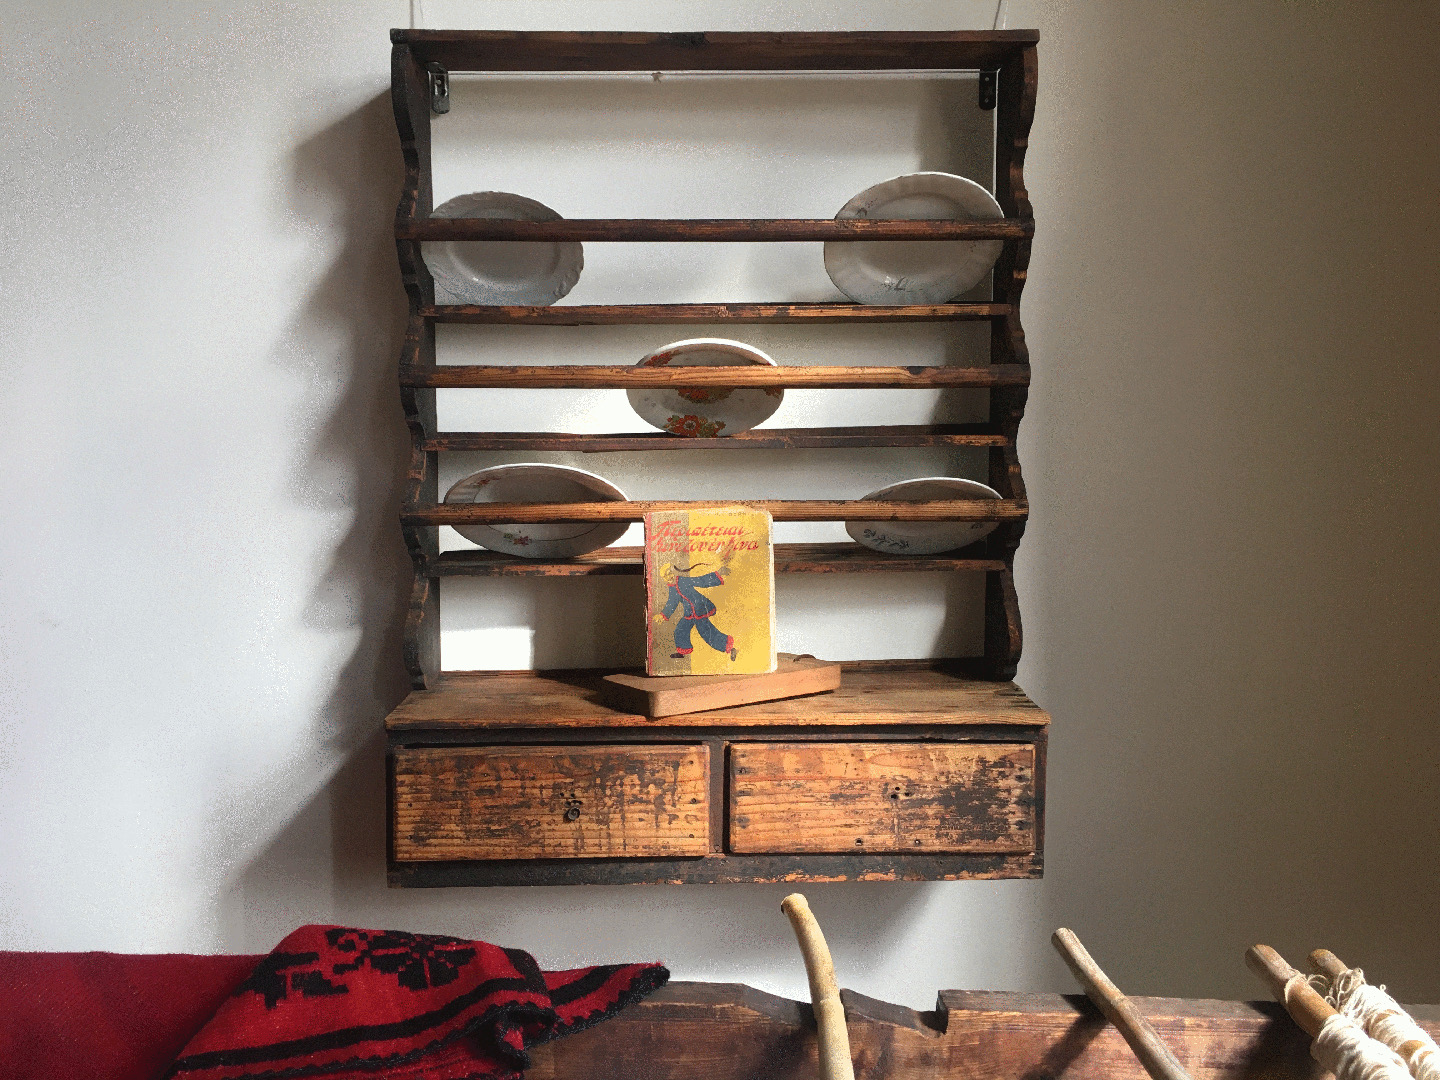 Plates and Literature